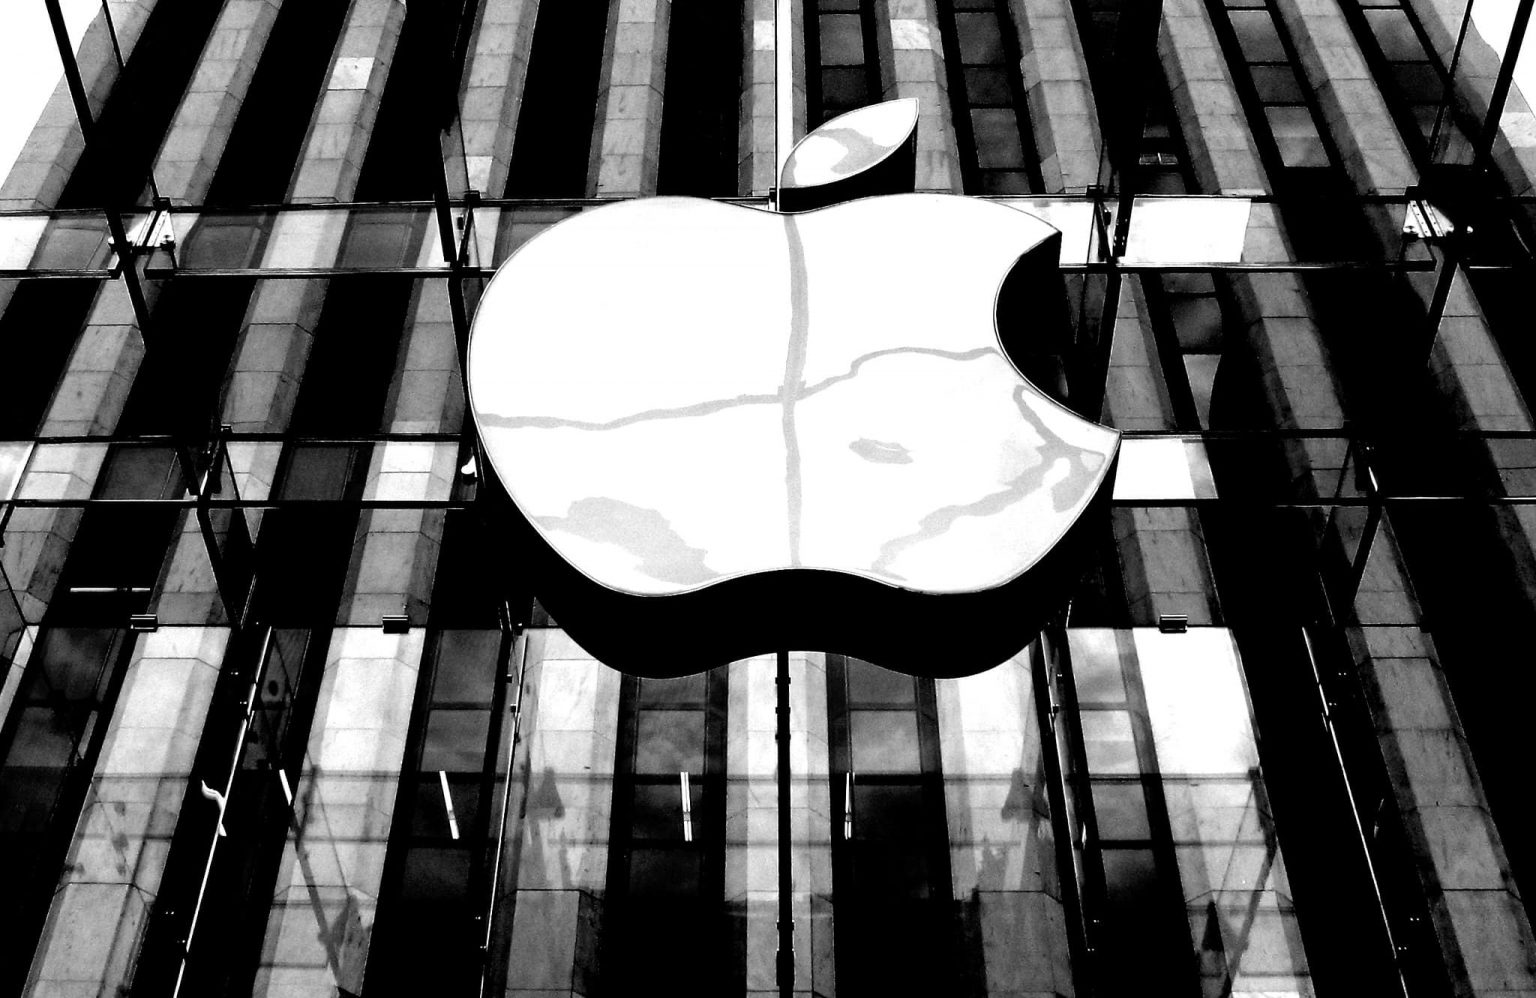 It will all be there in black-and-white on the quarterly Apple earnings report.